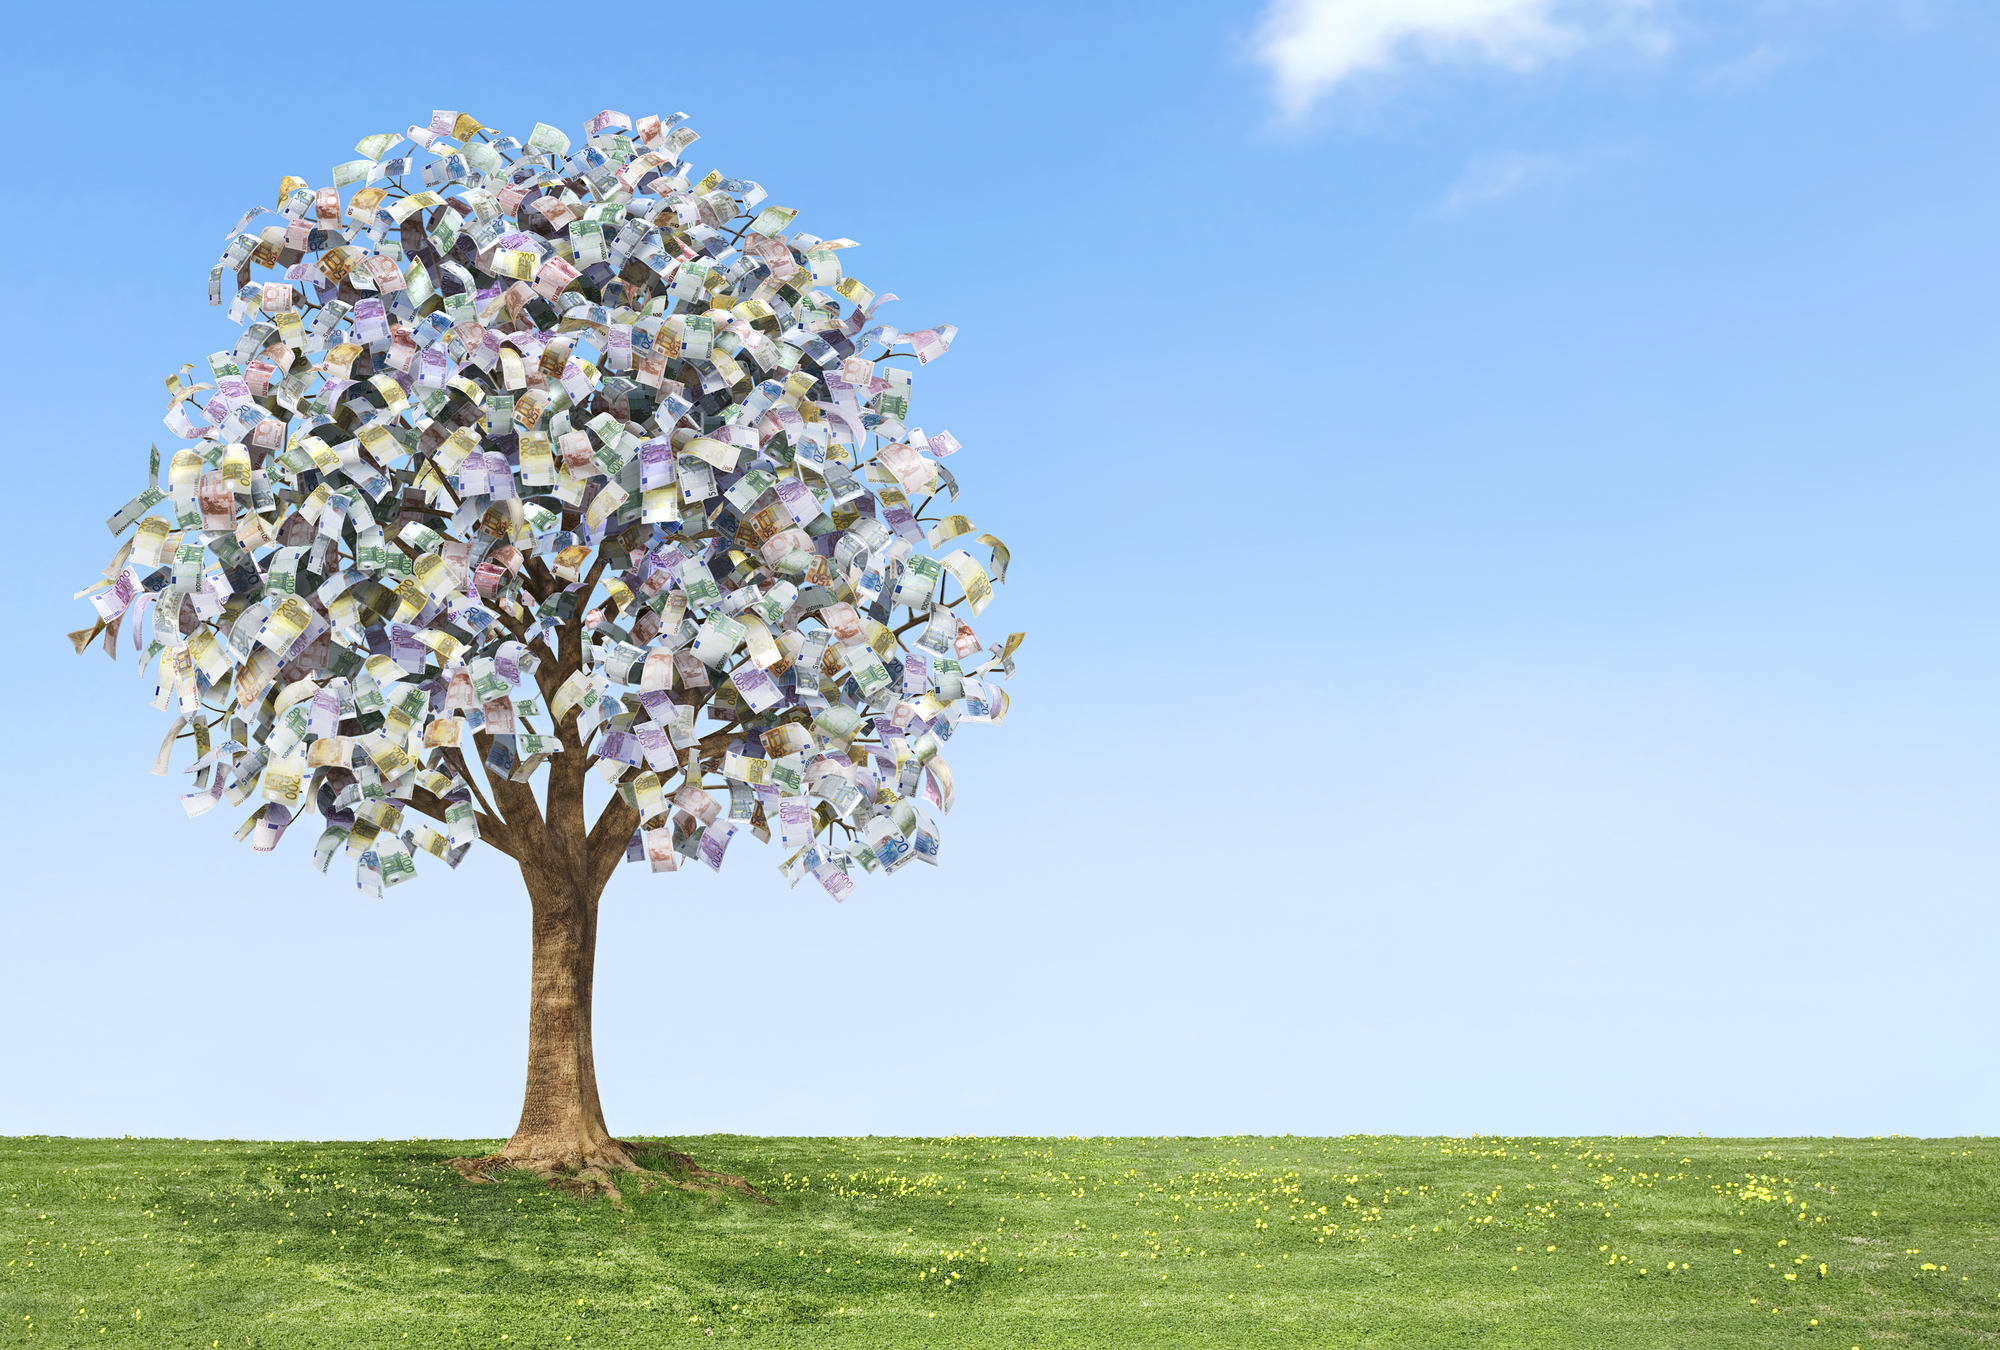 Image of a tree in abundance